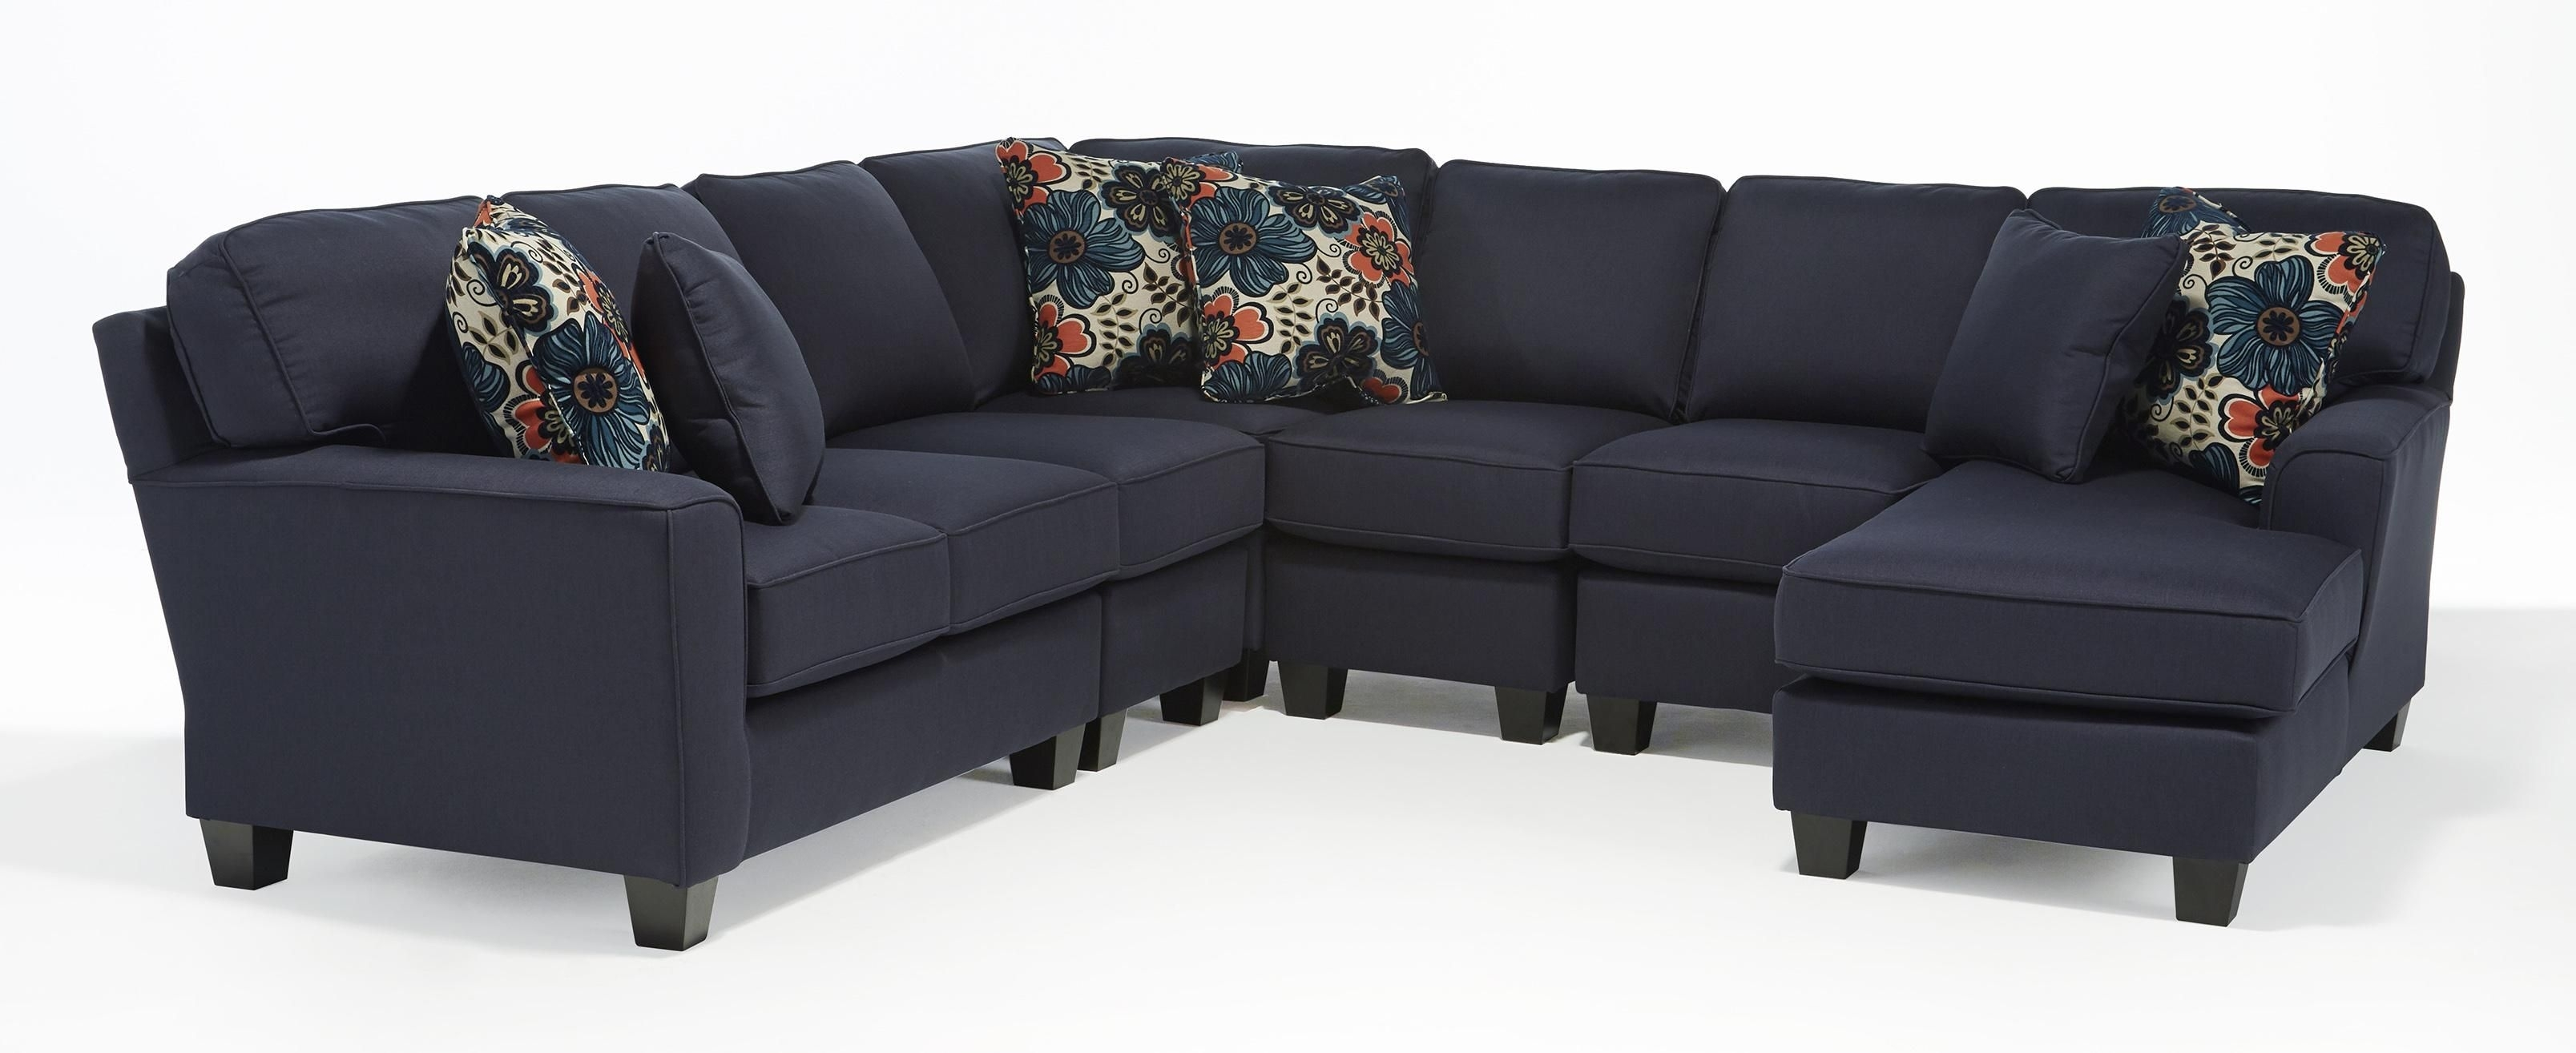 Best Home Furnishings Annabel Five Piece Customizable Sectional Sofa Intended For Durham Region Sectional Sofas (Image 1 of 10)